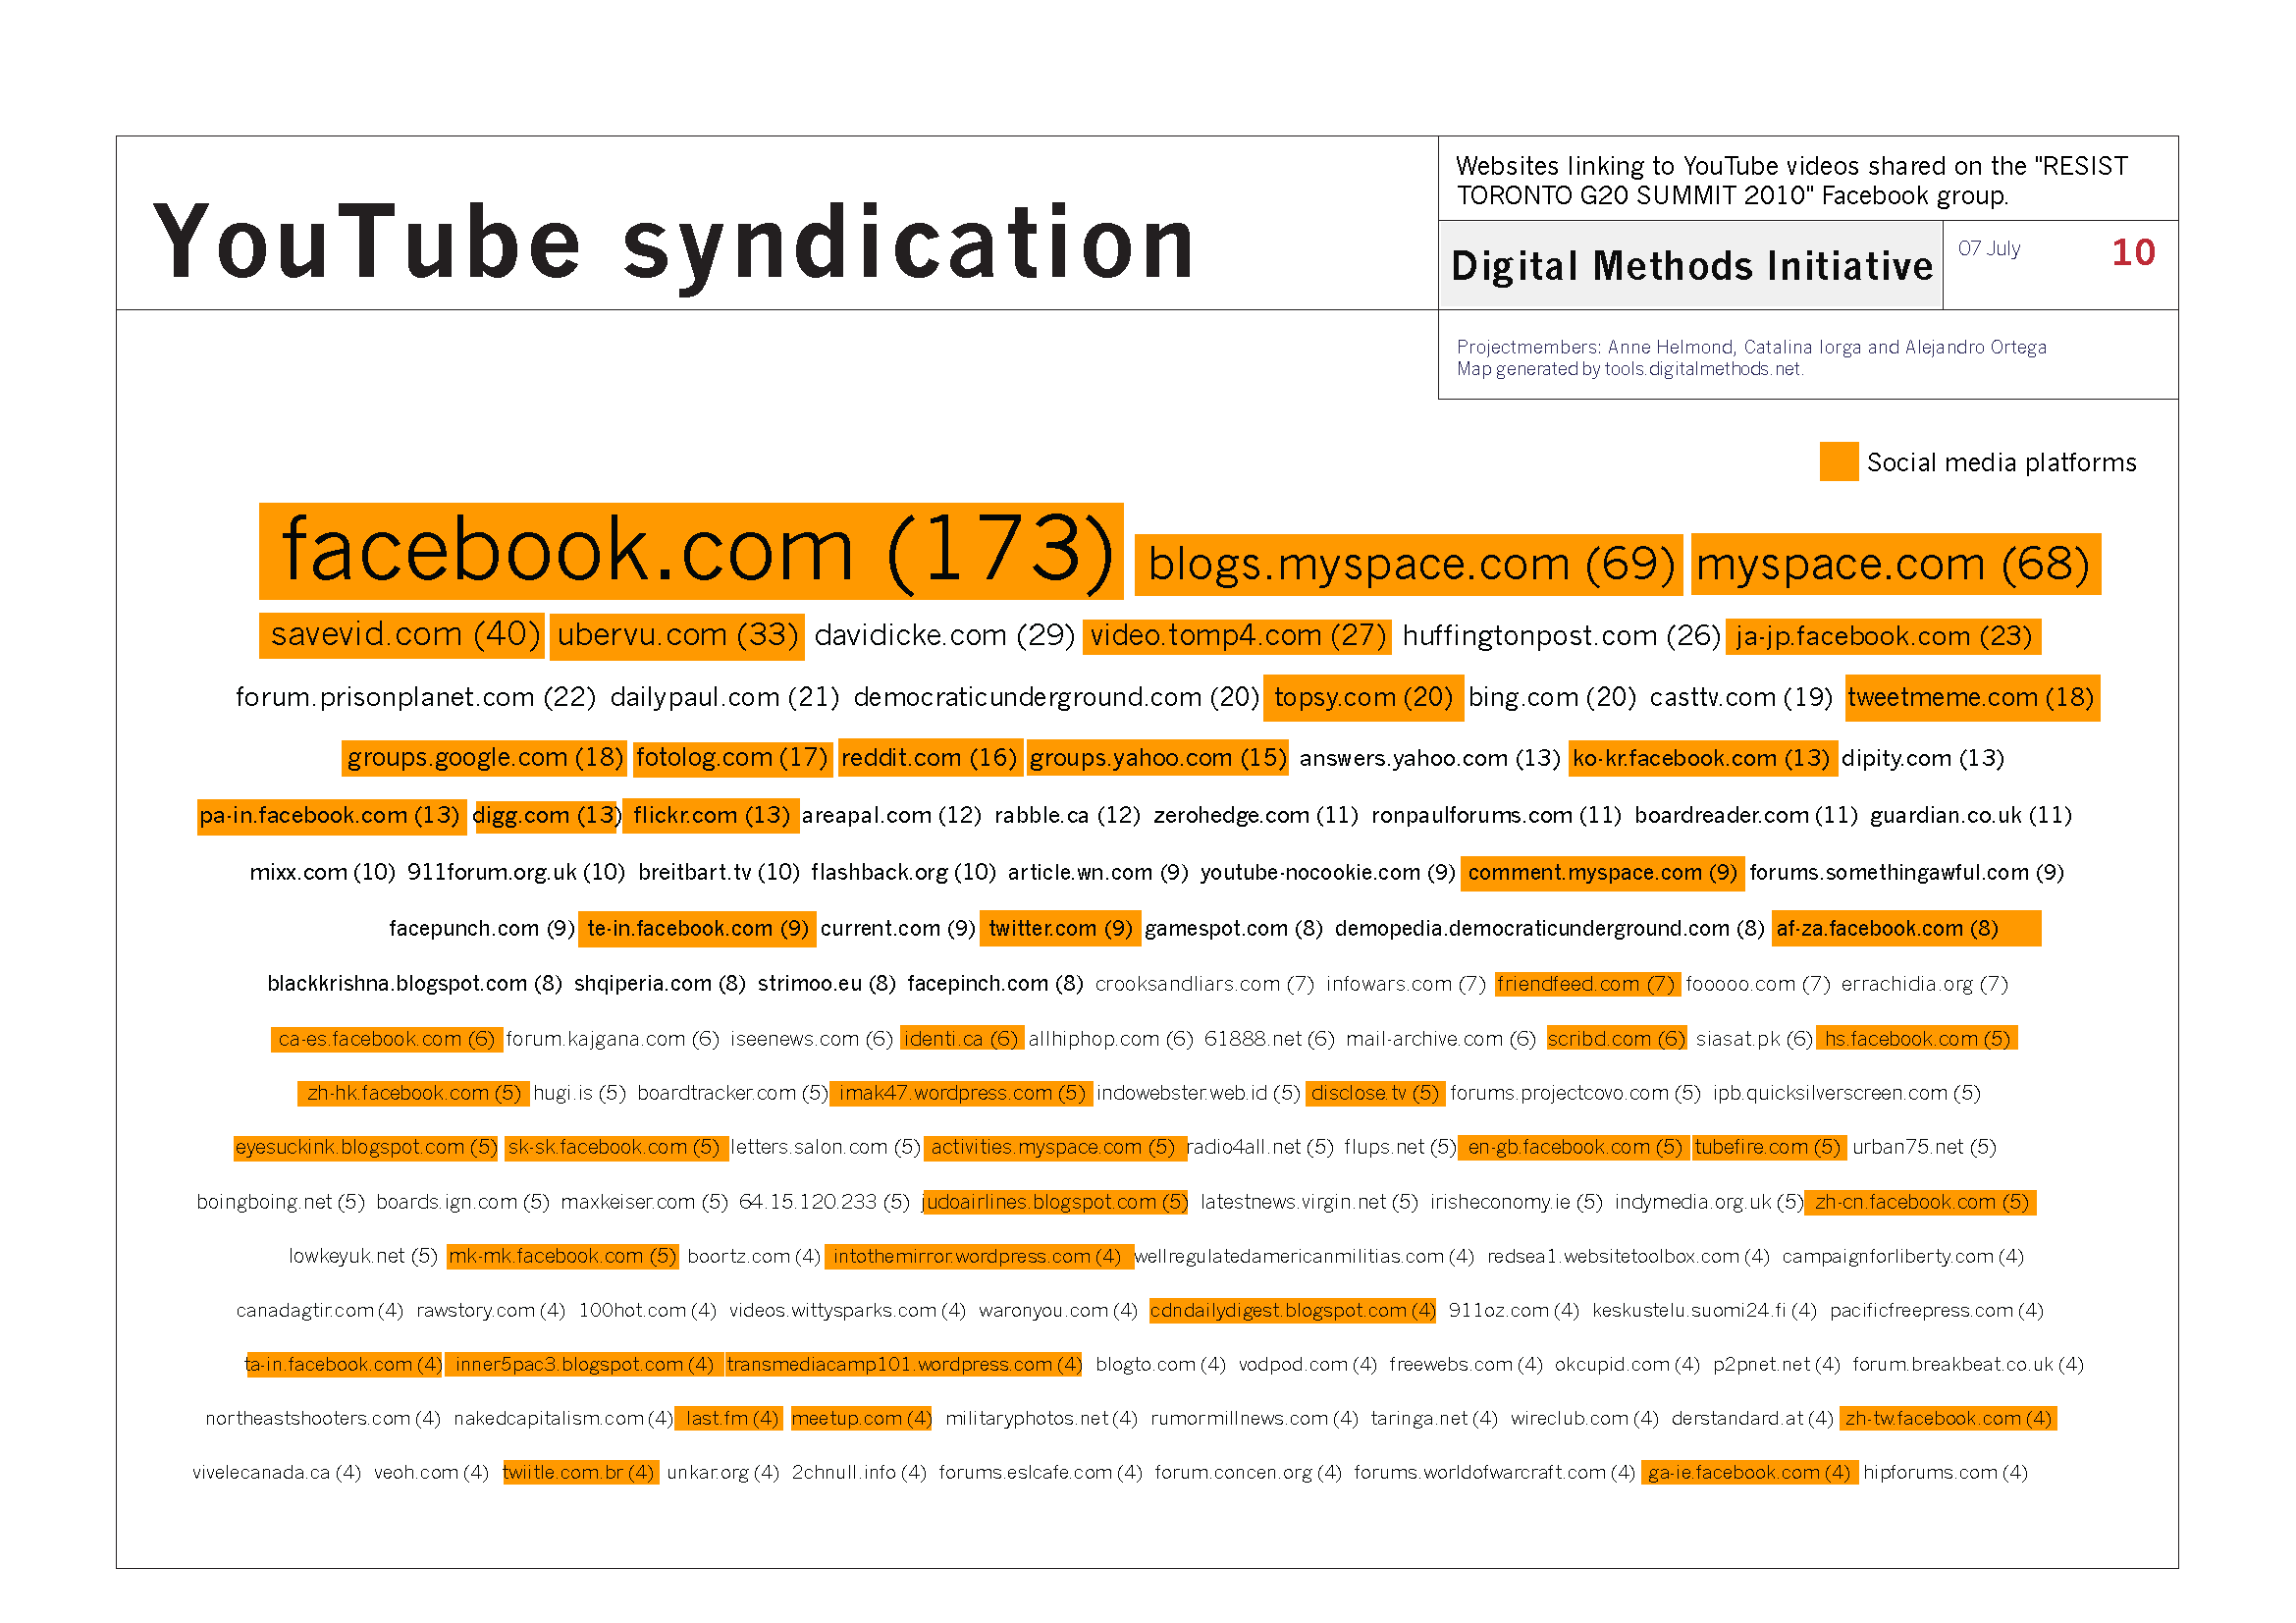 YouTube Syndication